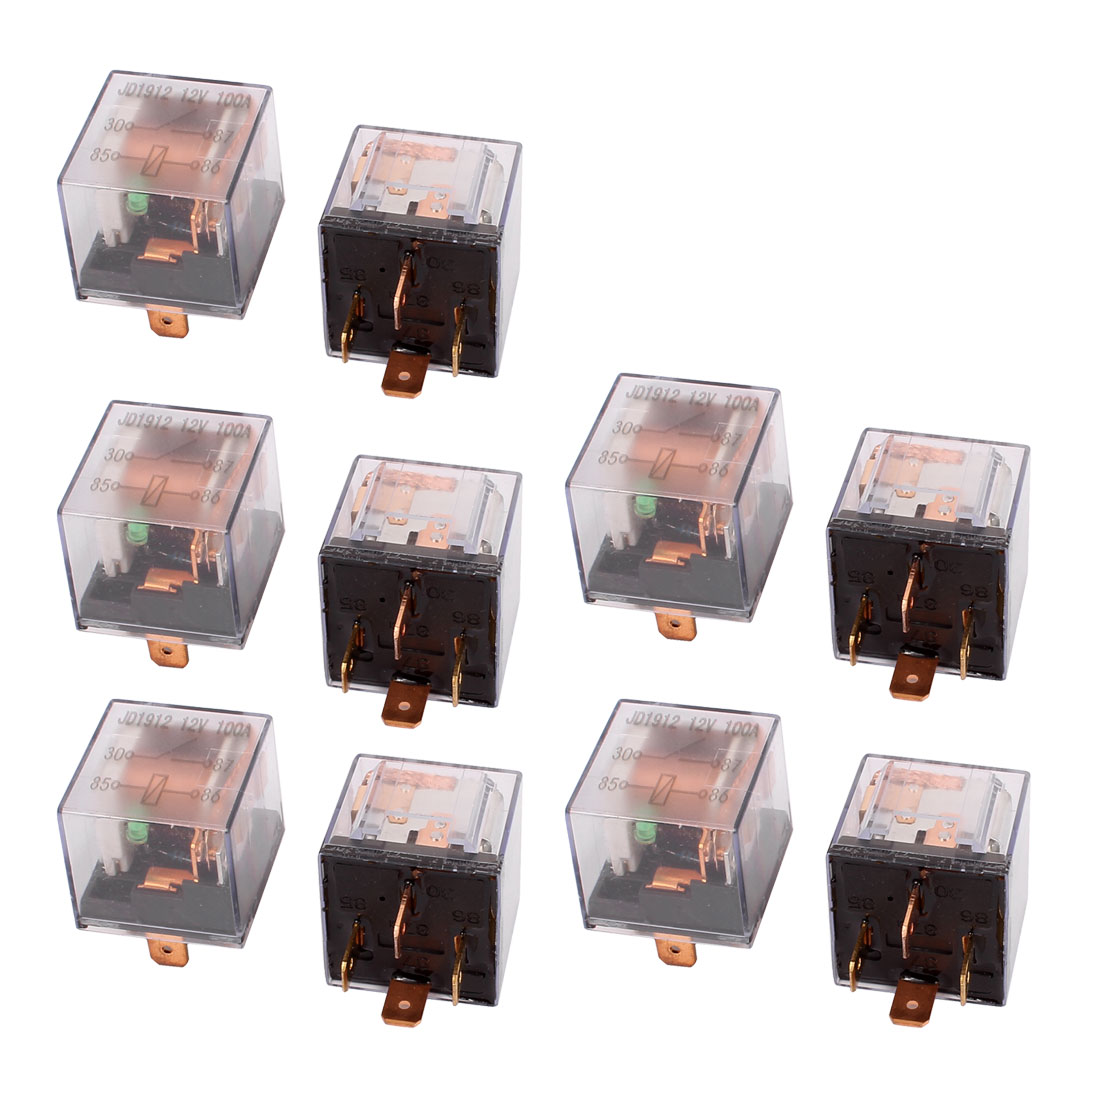 DC 12V 100A 4 Pins SPST Clear Shell Green Light Car Automotive Alarm Relay 10pcs